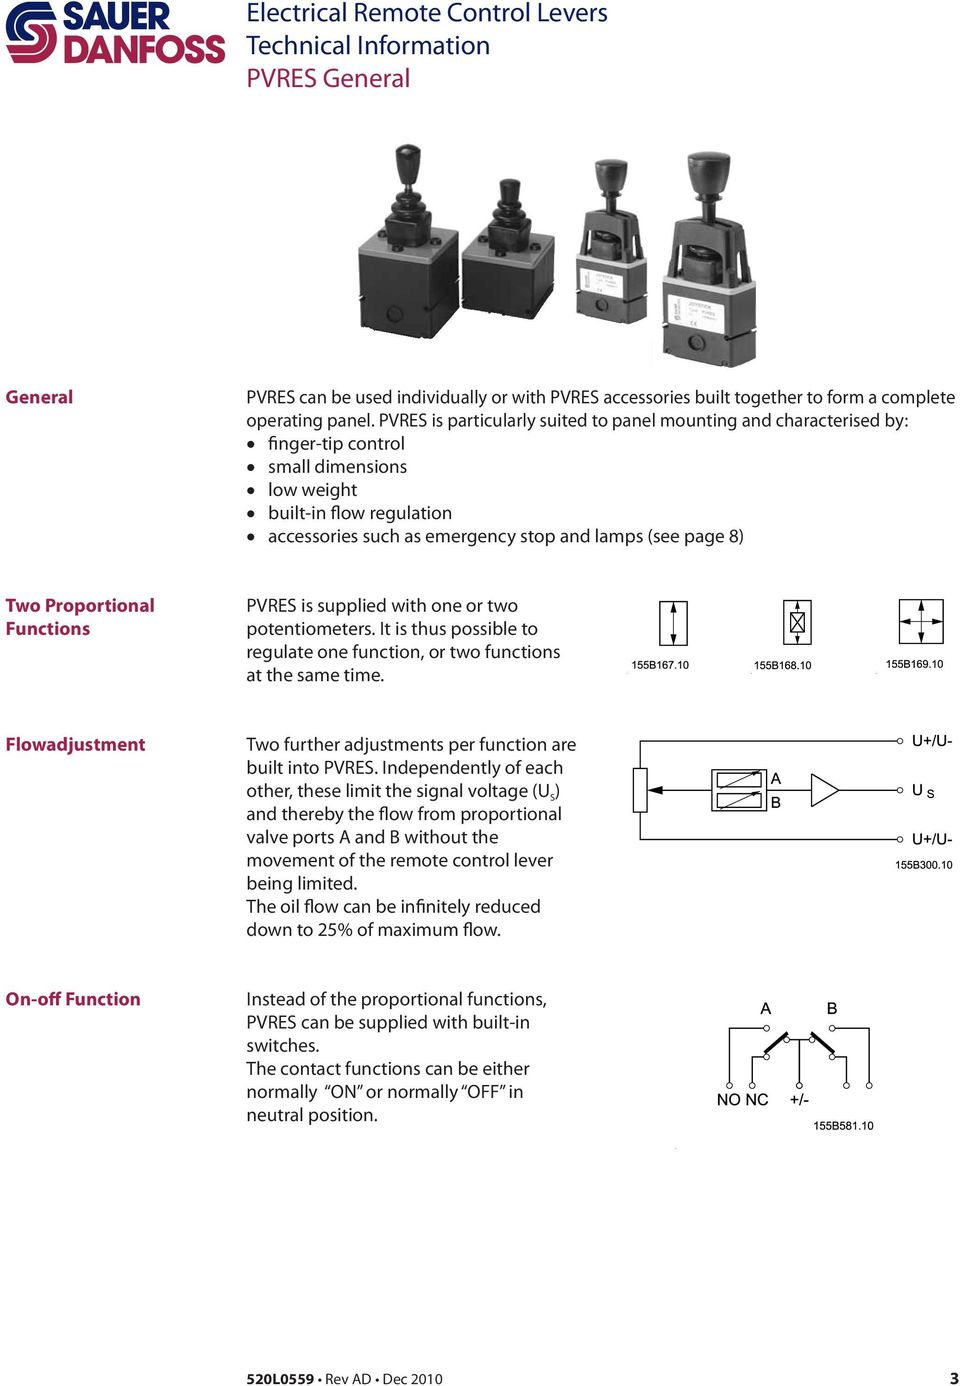 Joystick Pvres And Pvrel Technical Information Pdf Wiring Diagram 51 19 Two Proportional Functions Is Supplied With One Or Potentiometers It Thus Possible